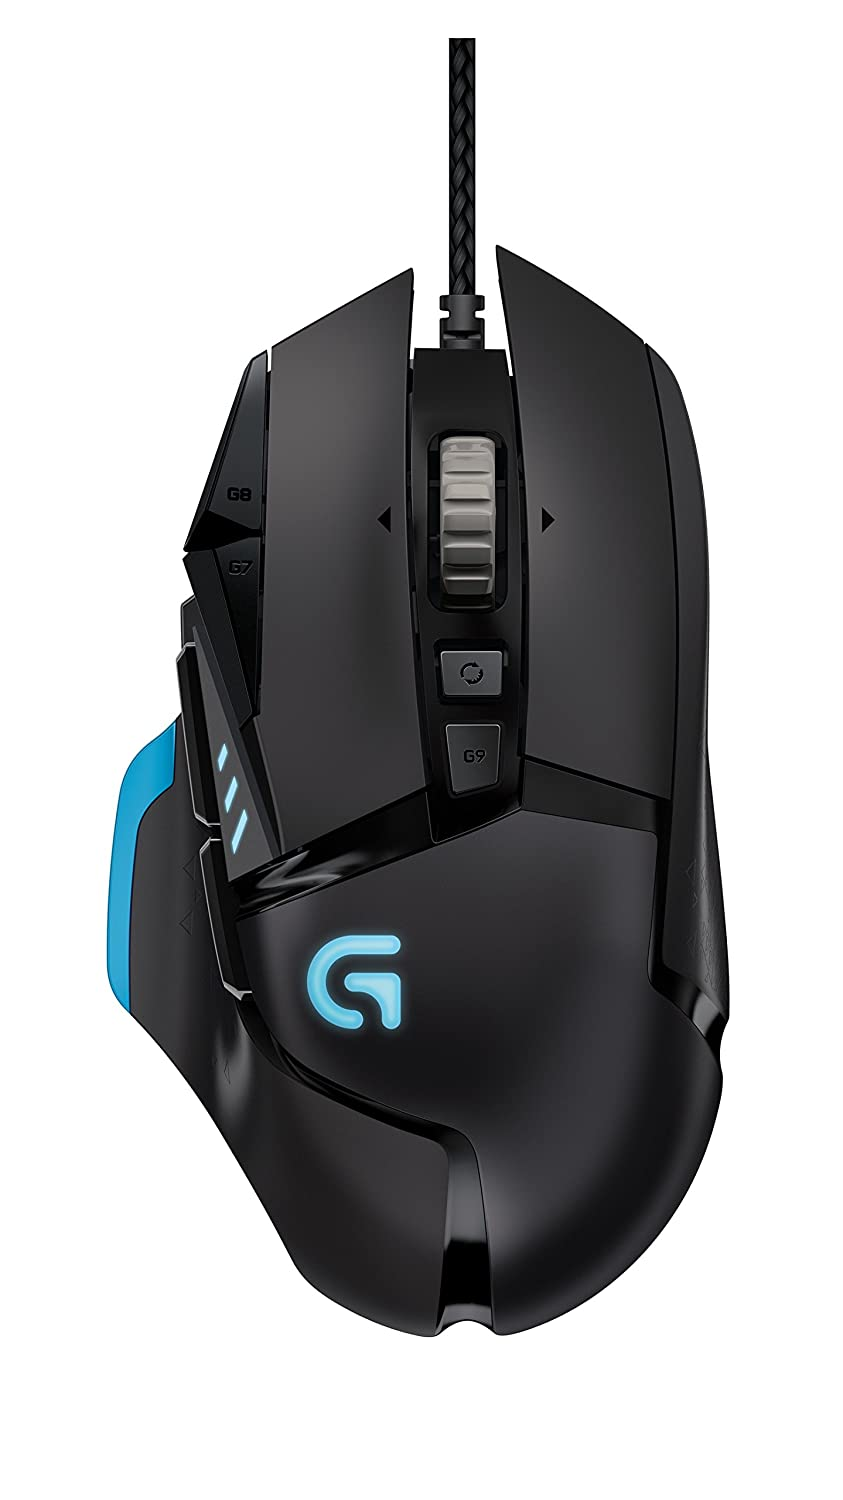 Logitech G502 Proteus Core - Ratón Gaming (compatible con PC y Mac, con cable USB), negro